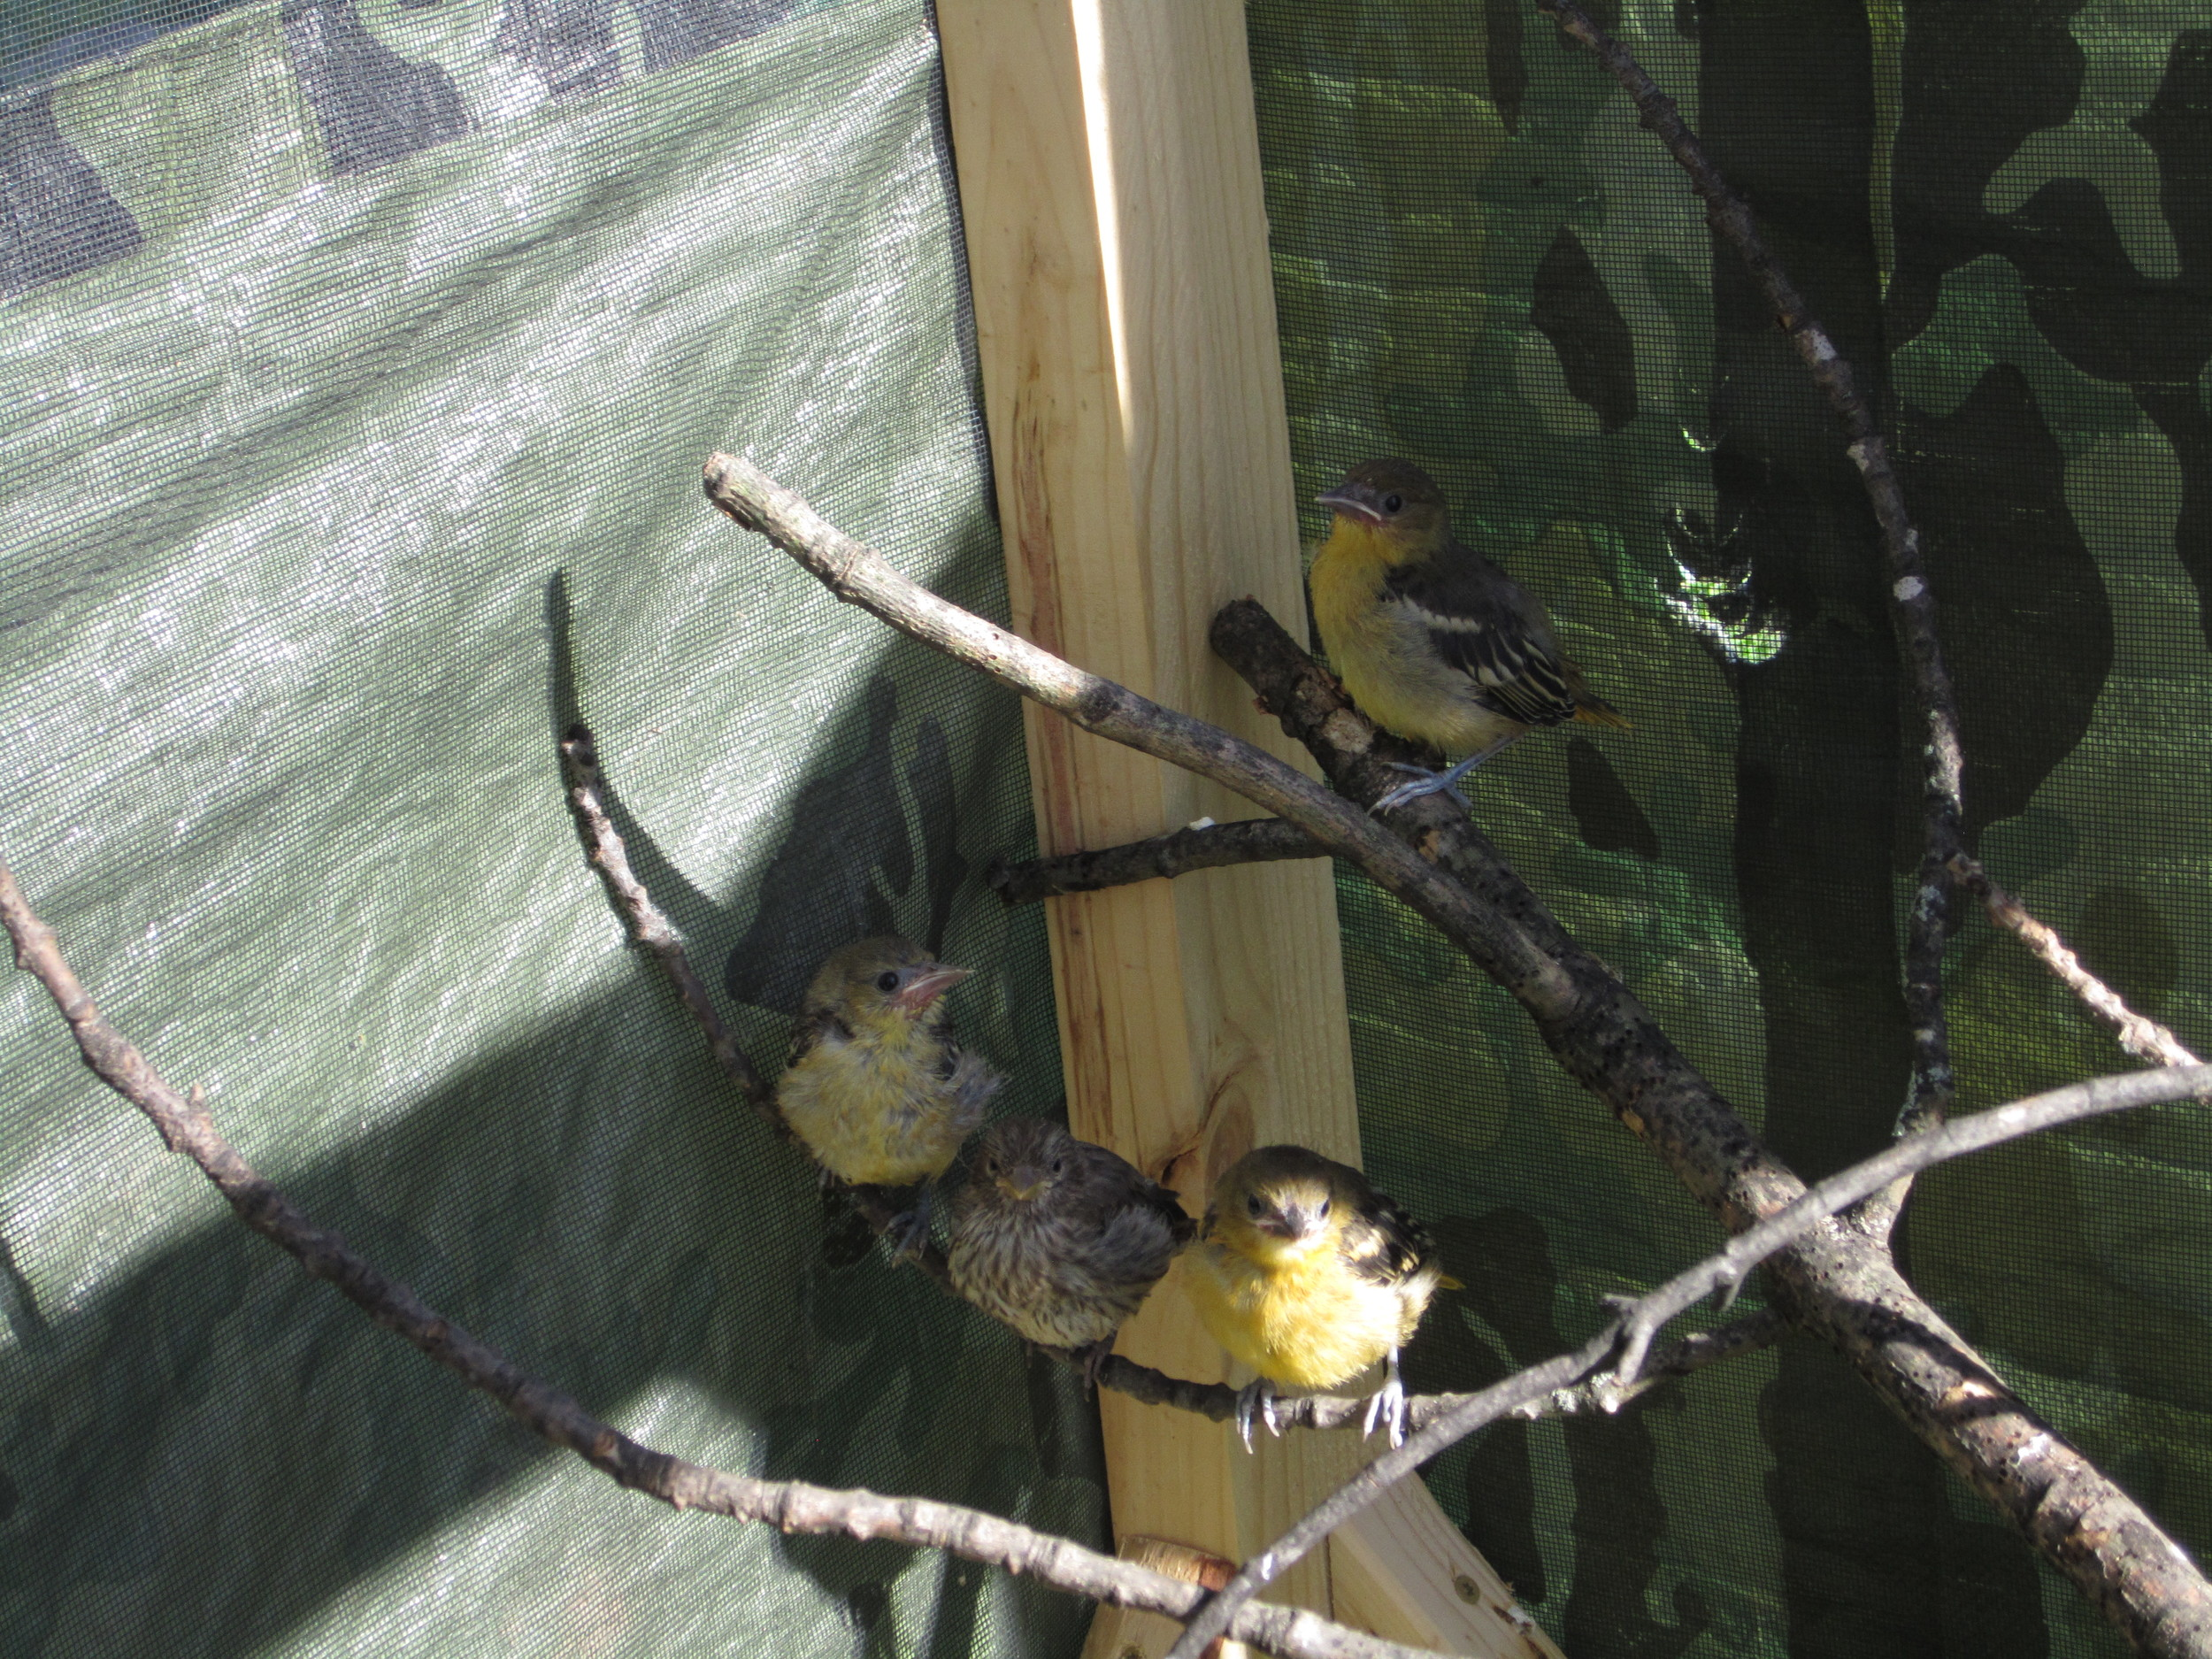 Top left: nestling grackles, Top Right: the grackles grown and out in a screened in area  Bottom left: nestling Red-breasted Nuthatch, Bottom Right: Orioles and a House Finch in a screened in area.